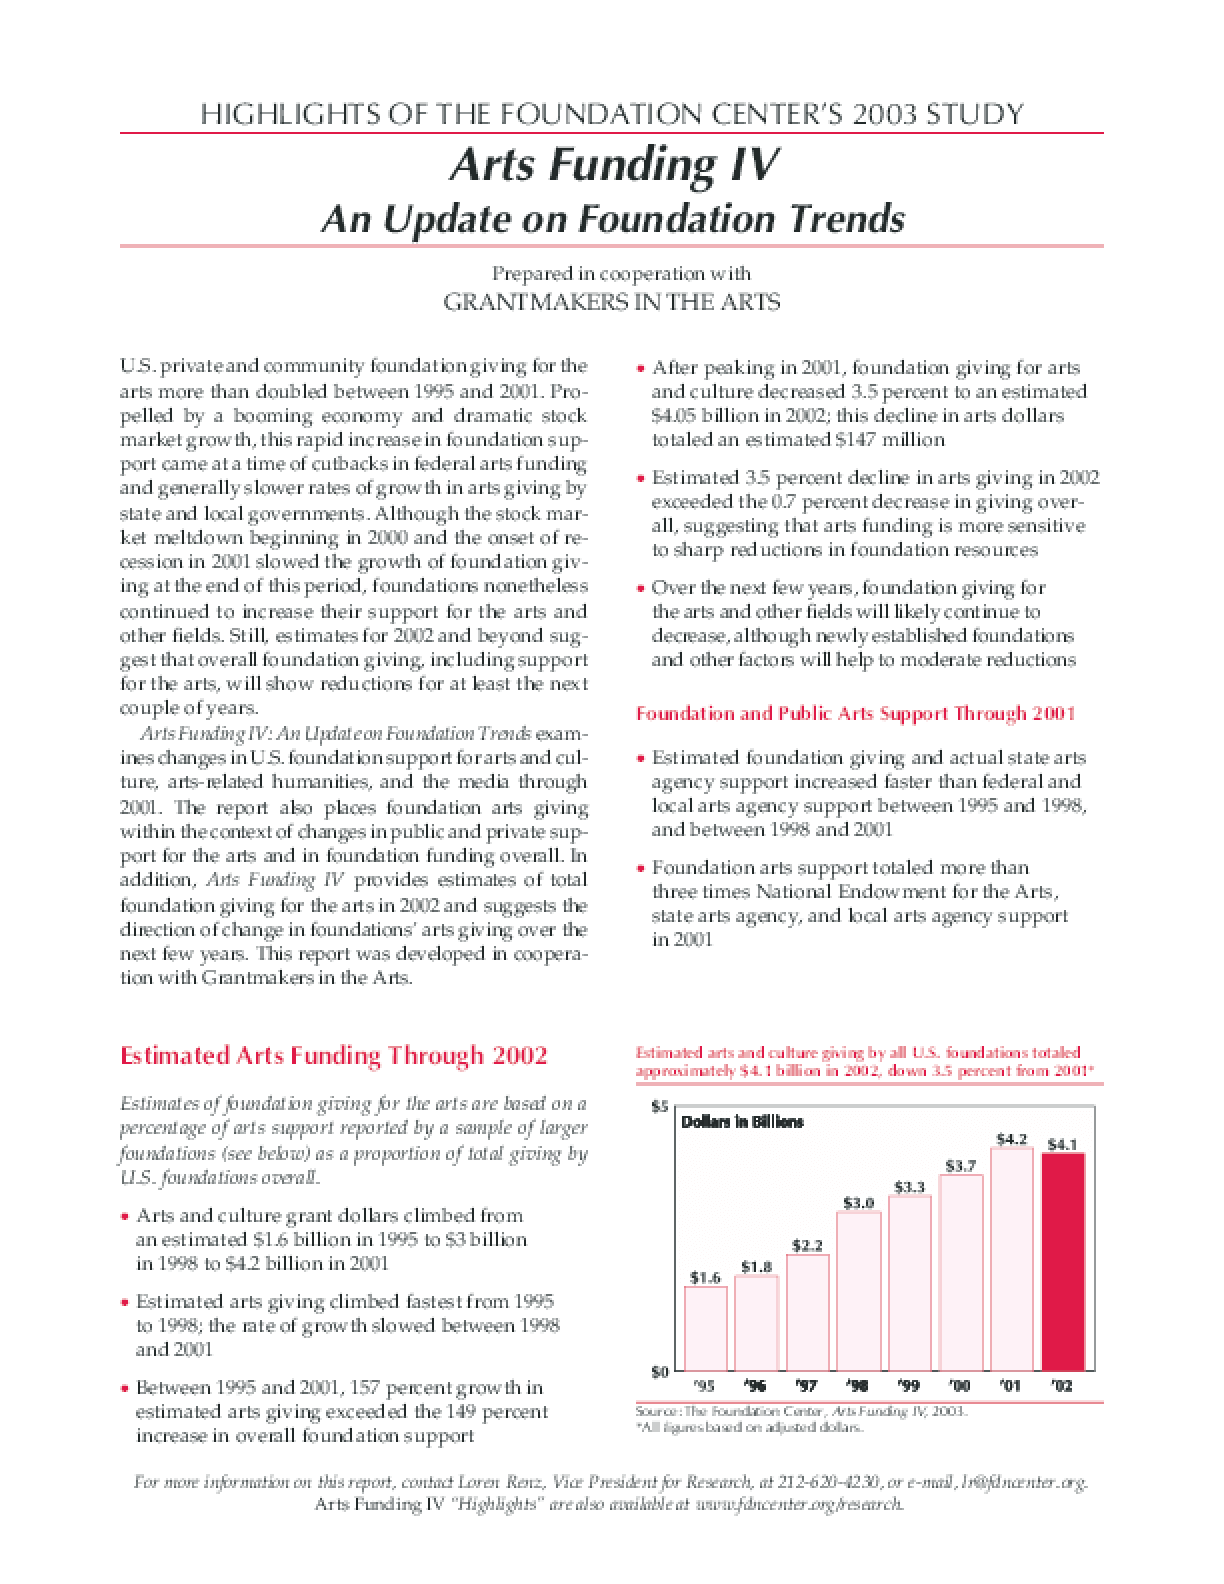 Arts Funding IV (Highlights)